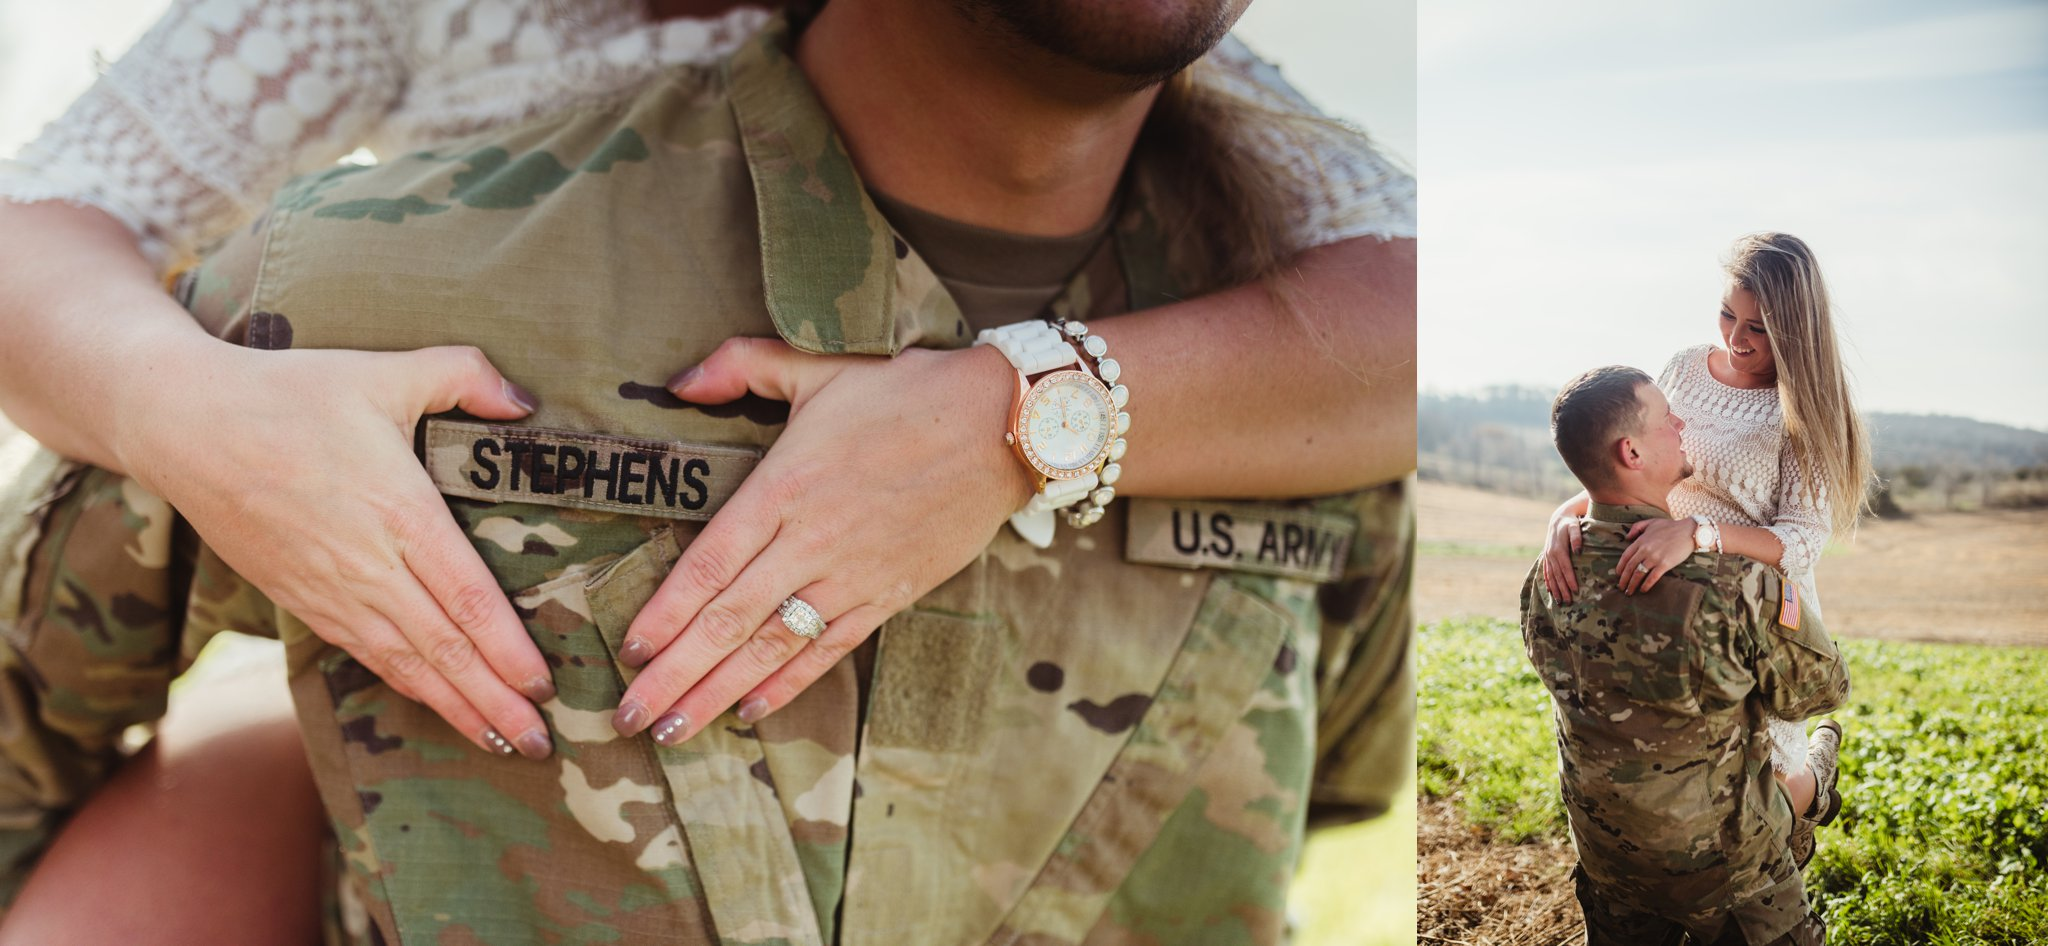 engagement photo military army name tag.jpg